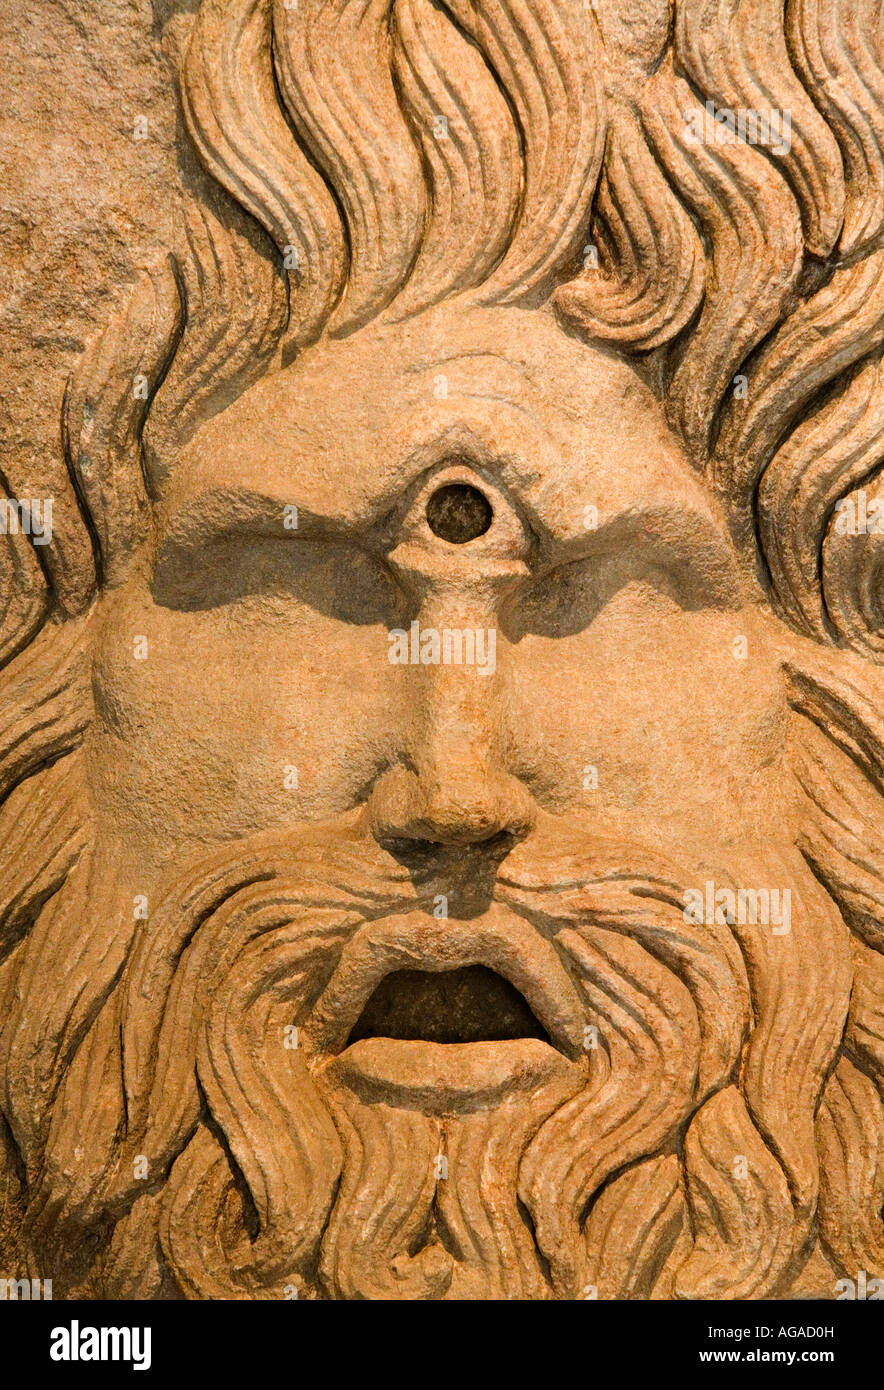 Statue detail of Cyclops, Roman God, recovered in dig in l'Orange, Provence, France - Stock Image